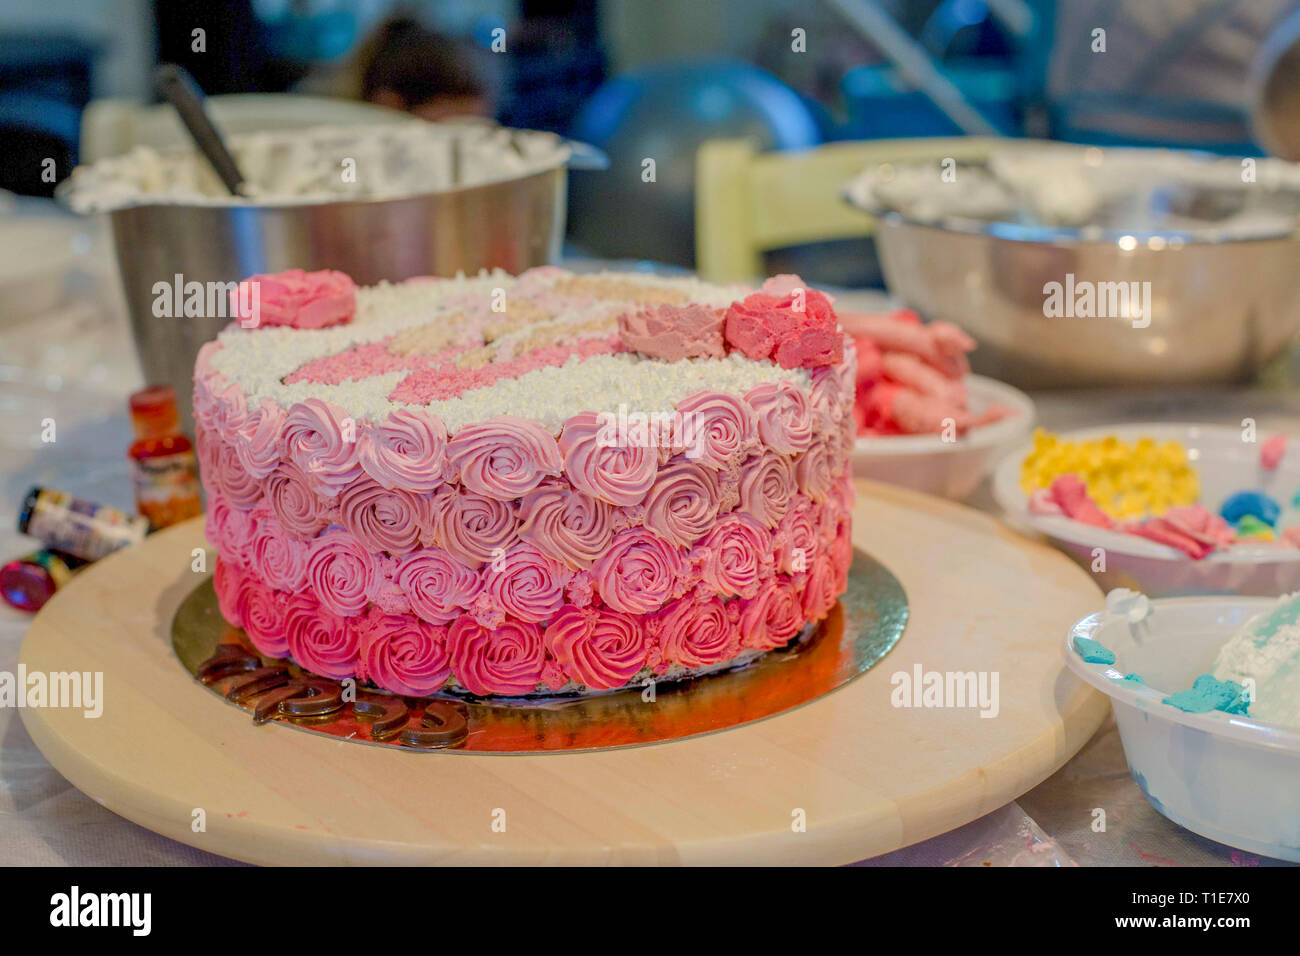 Decorating a birthday cake with icing sugar unicorn - Stock Image